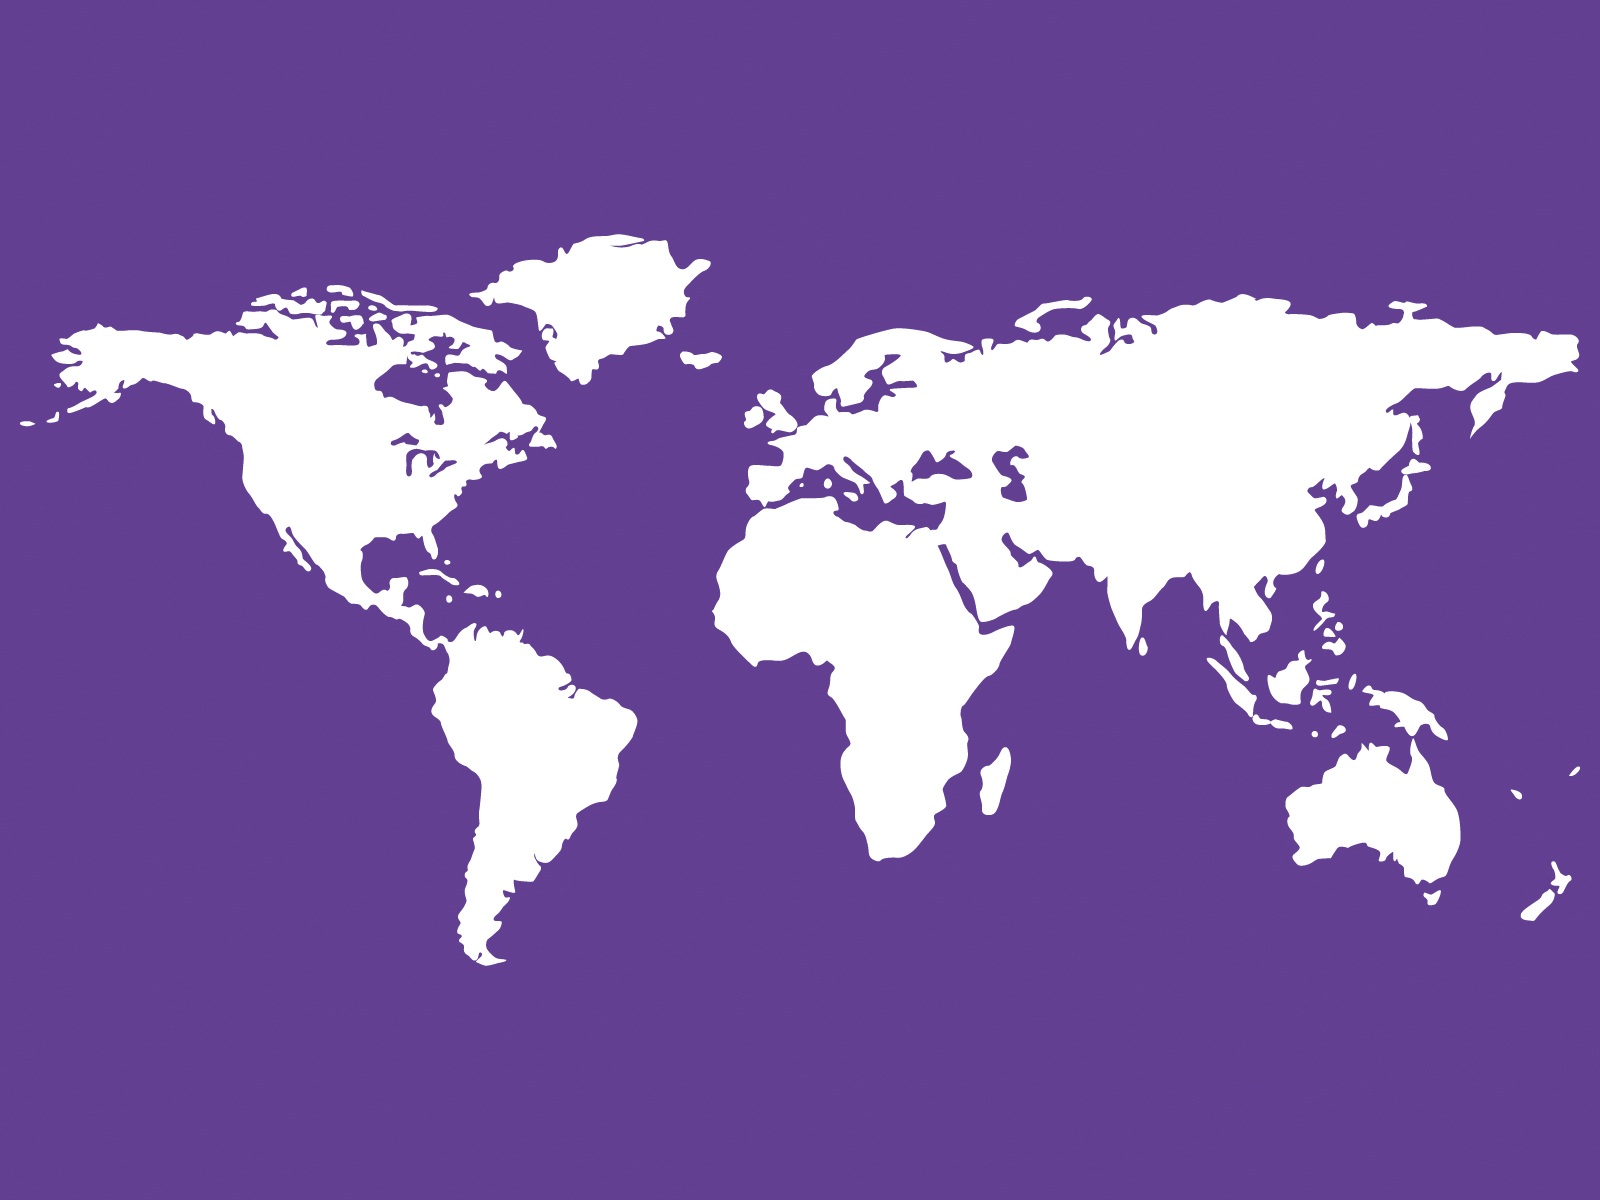 Purple world maps backgrounds business design purple templates purple world maps backgrounds gumiabroncs Image collections